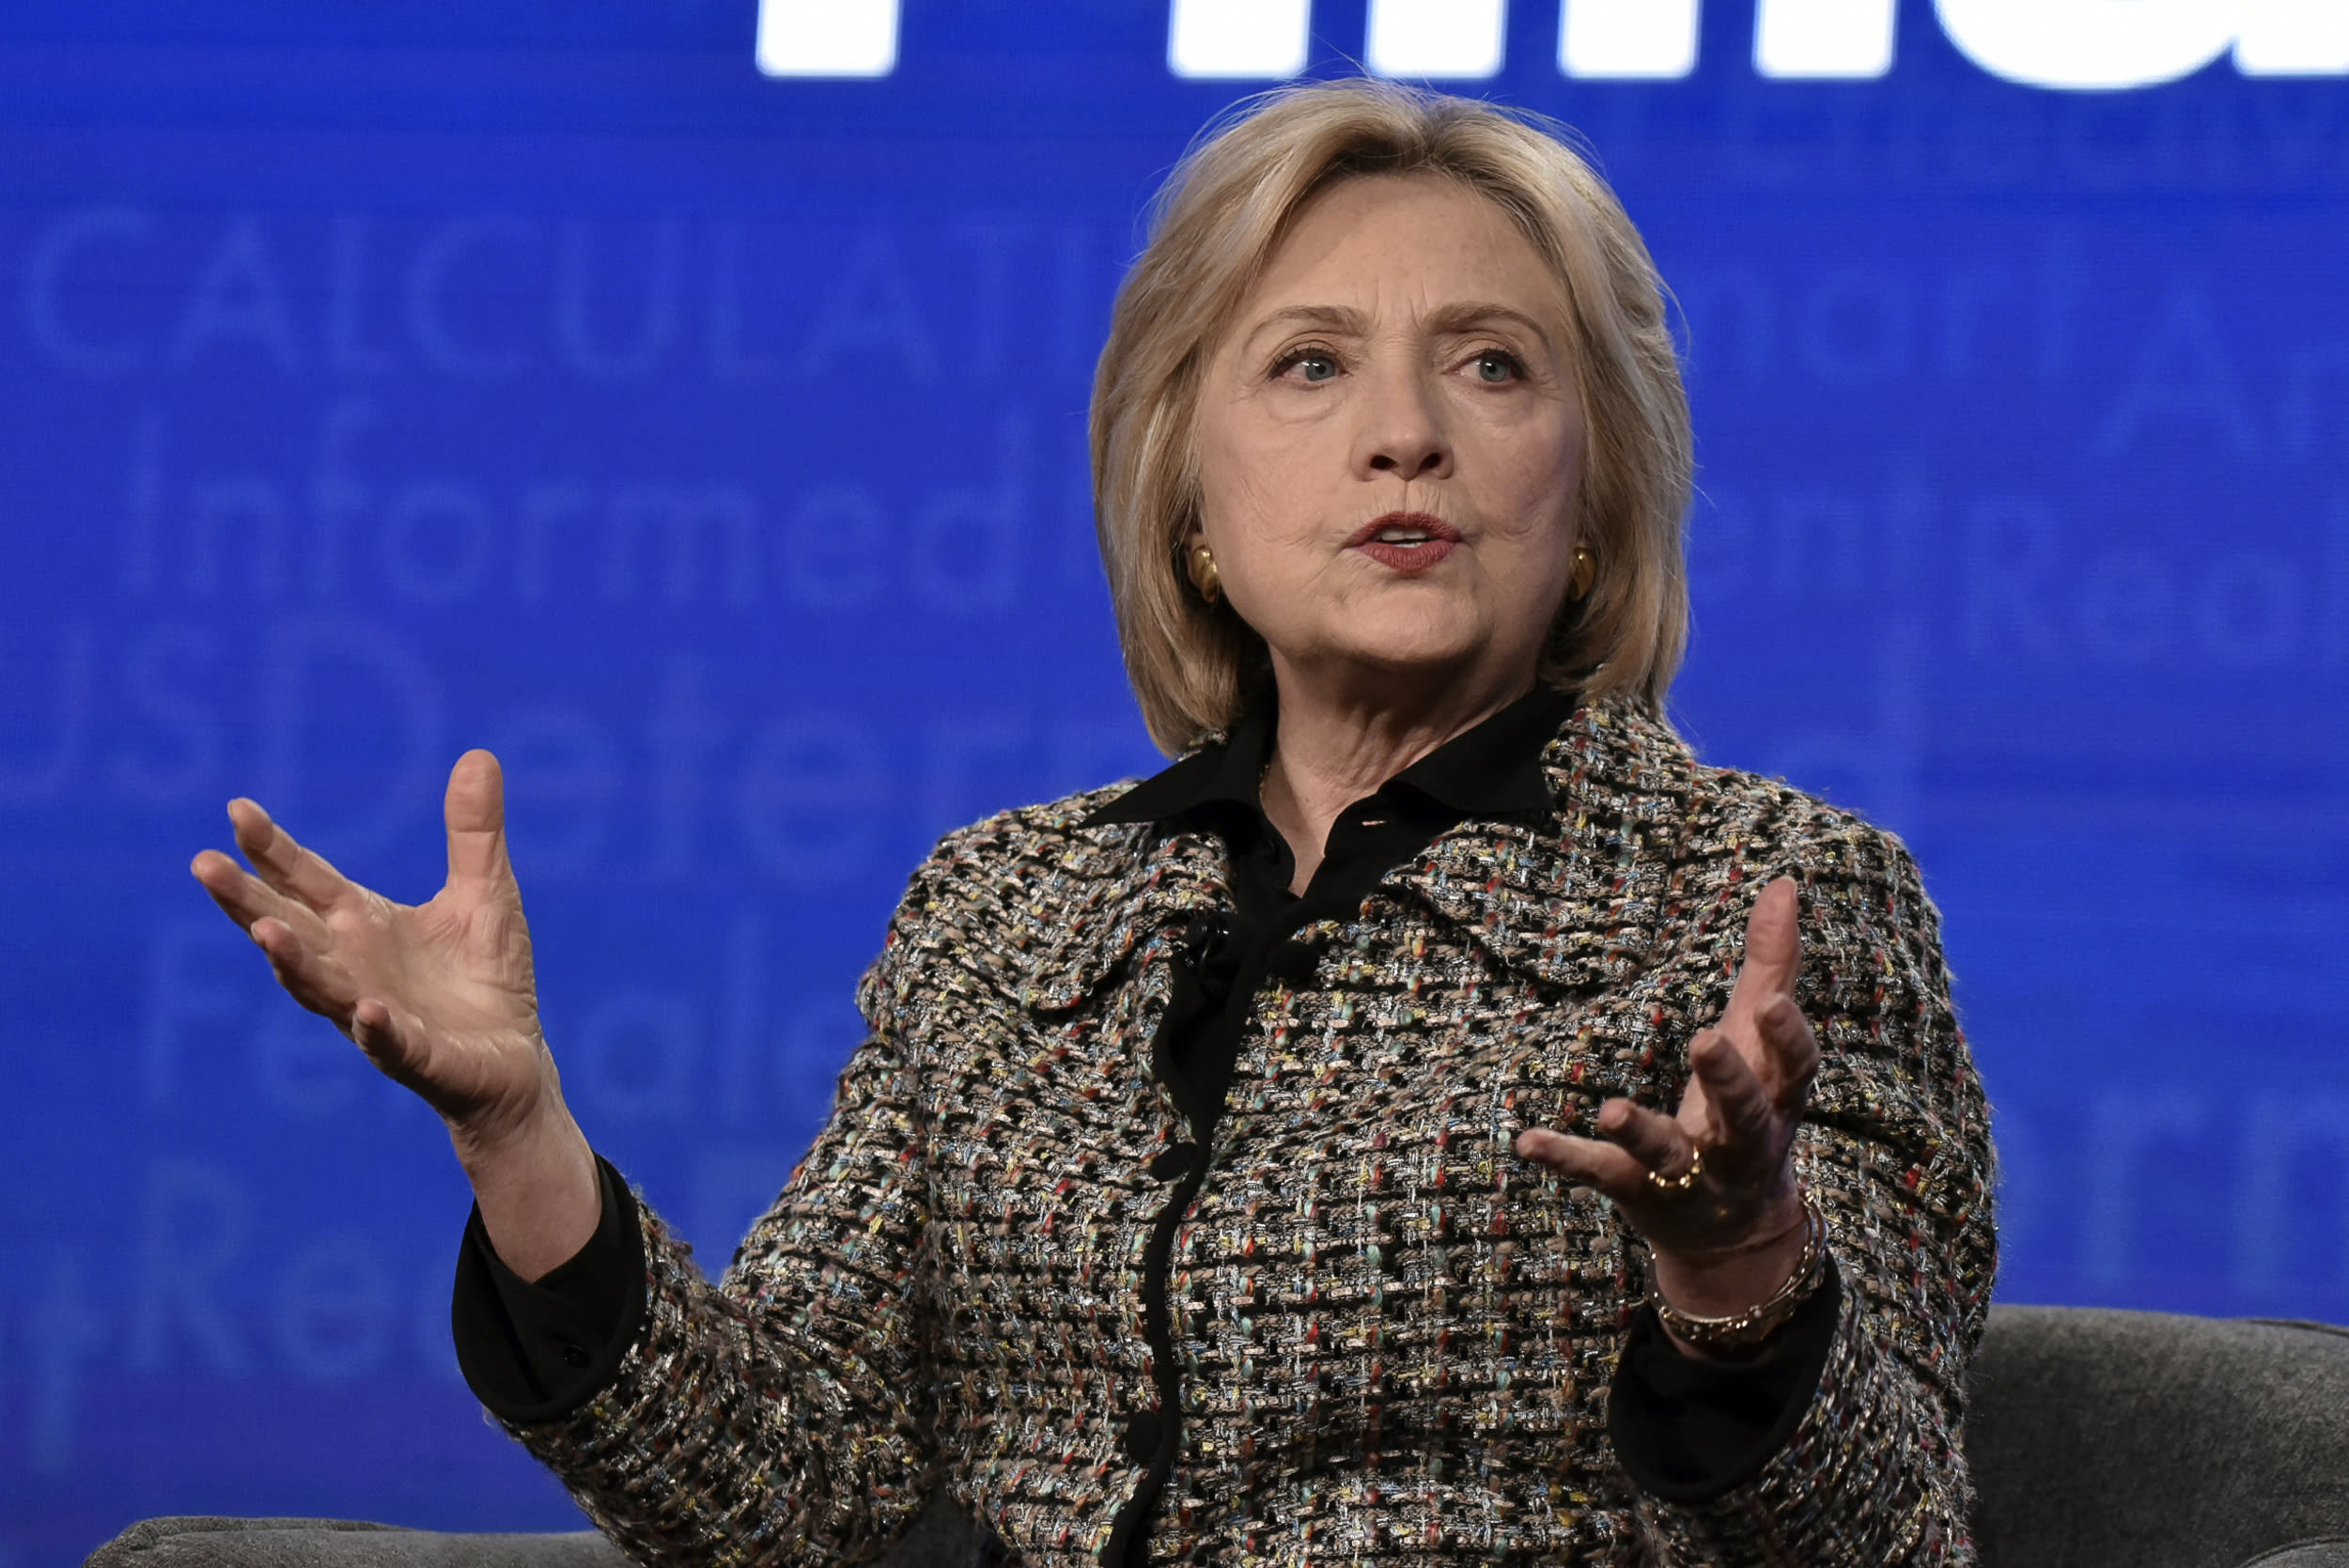 Hillary Clinton opens up about marriage in new documentary